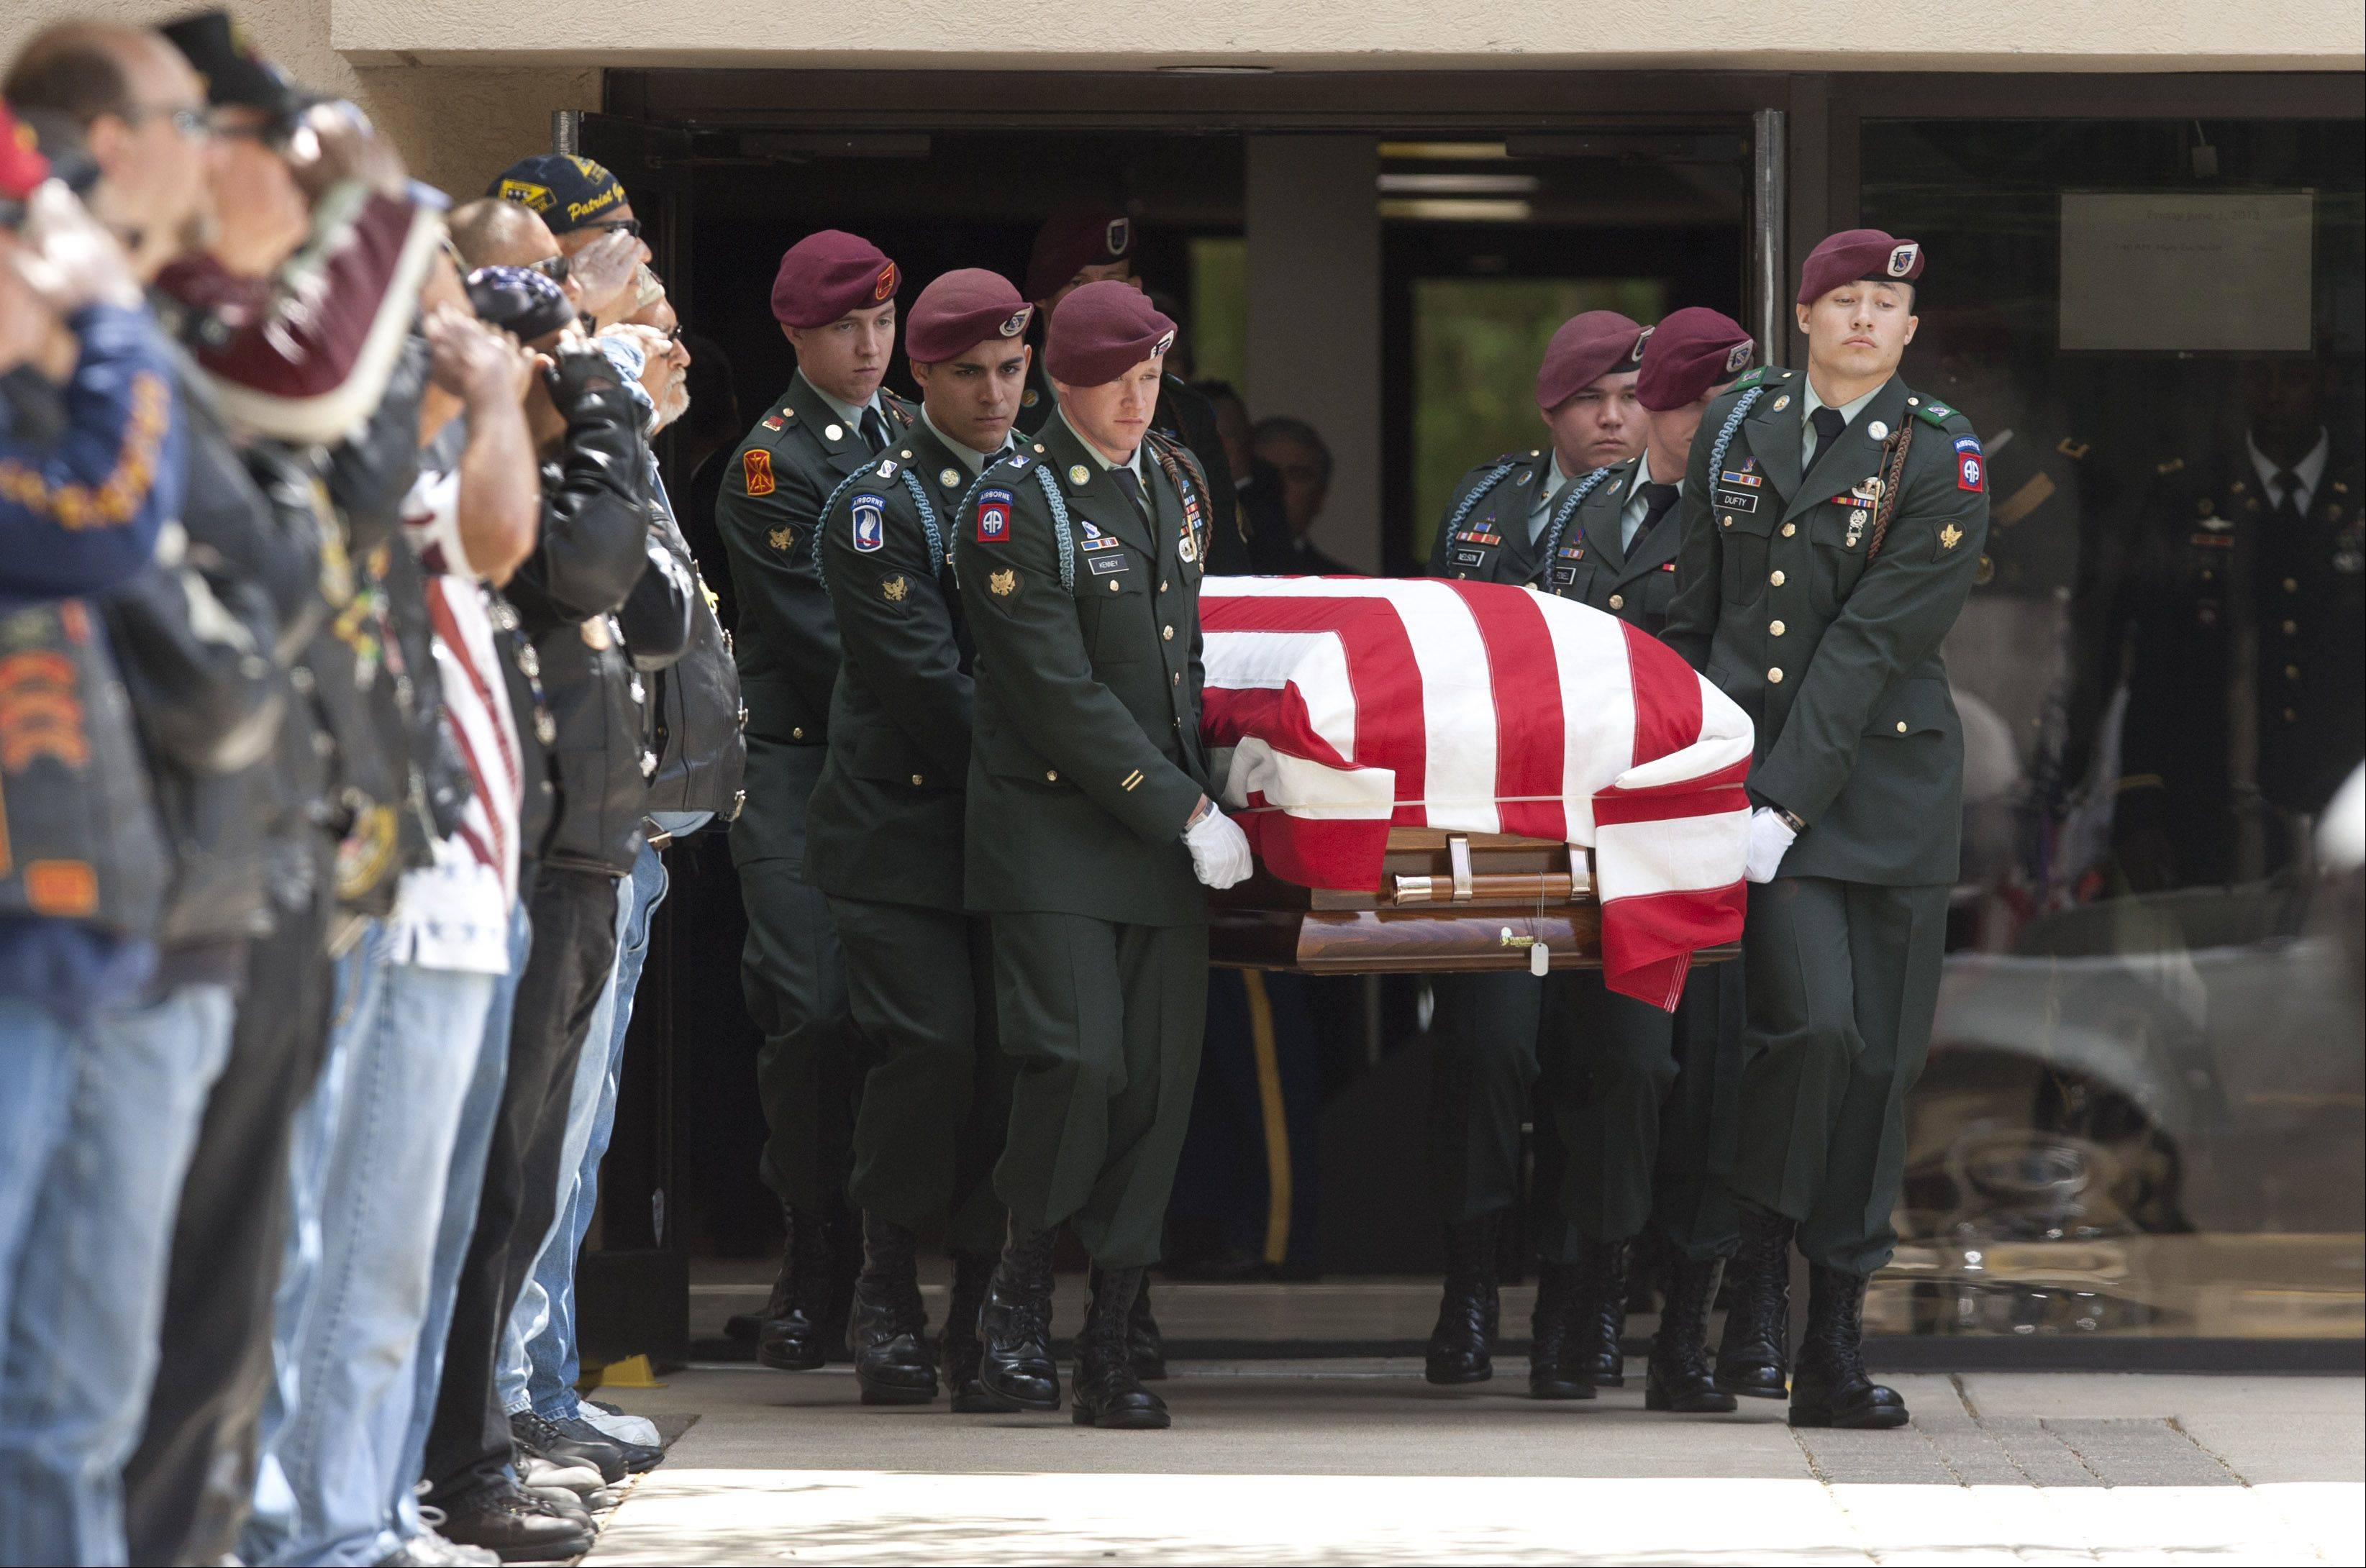 U.S. Army Spc. Samuel Watts, 20, a 2010 Wheaton North High School graduate, is laid to rest following a service at St. John Lutheran Church in downtown Wheaton. He died April 25, about a month after suffering wounds from an explosion while serving in Afghanistan.